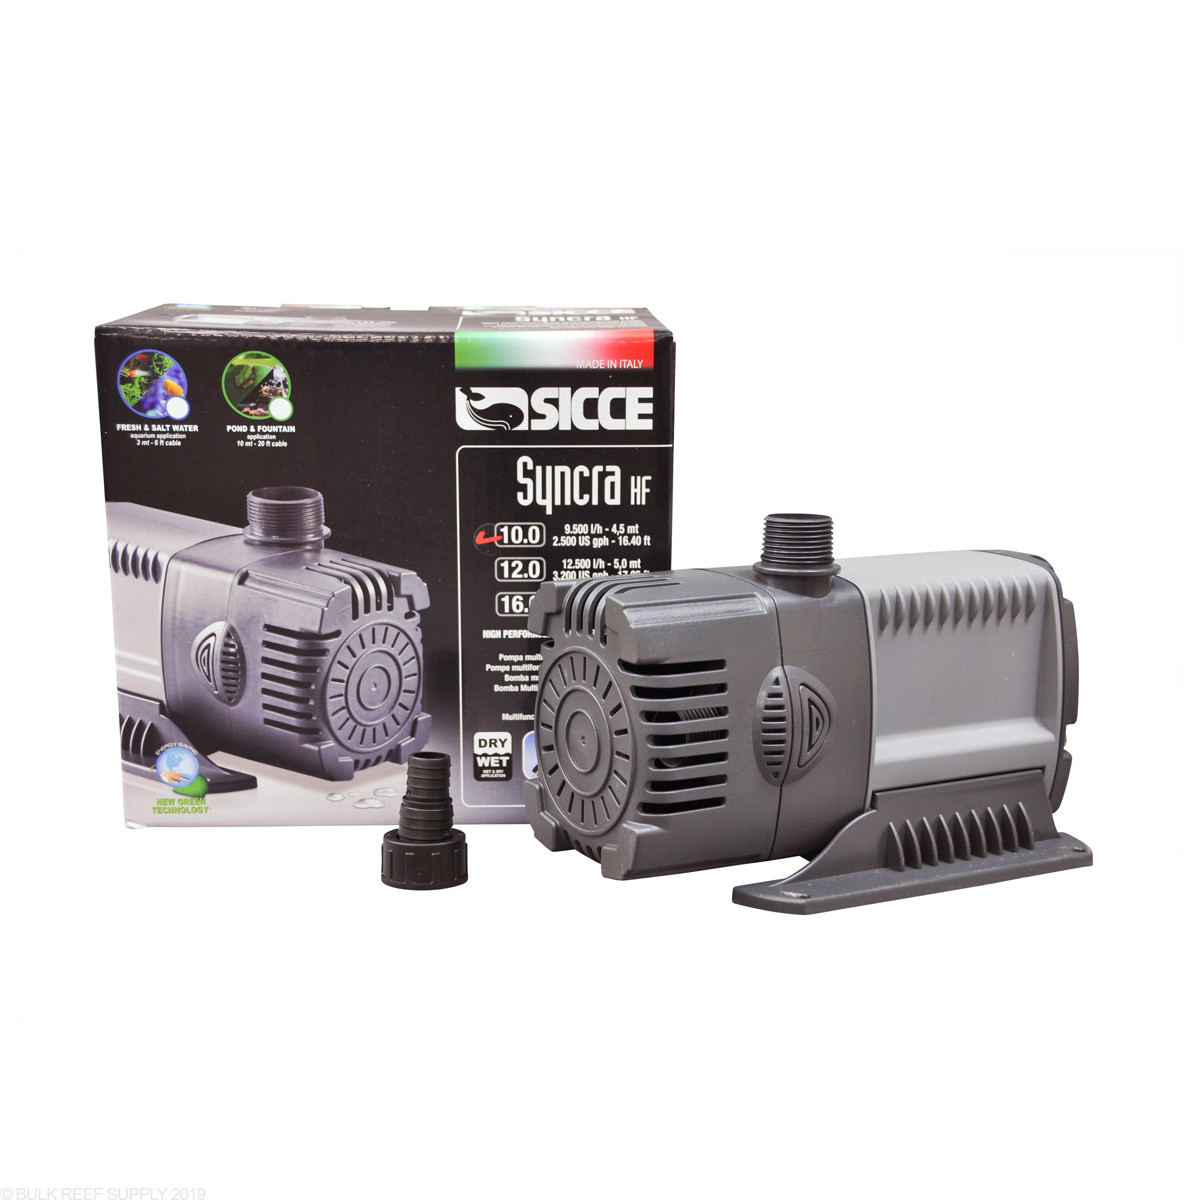 Pumps (water) Syncra 0.5 Water Pump 185gph Cheap Sales 50% Fish & Aquariums Sicce Syncra Silent Pump